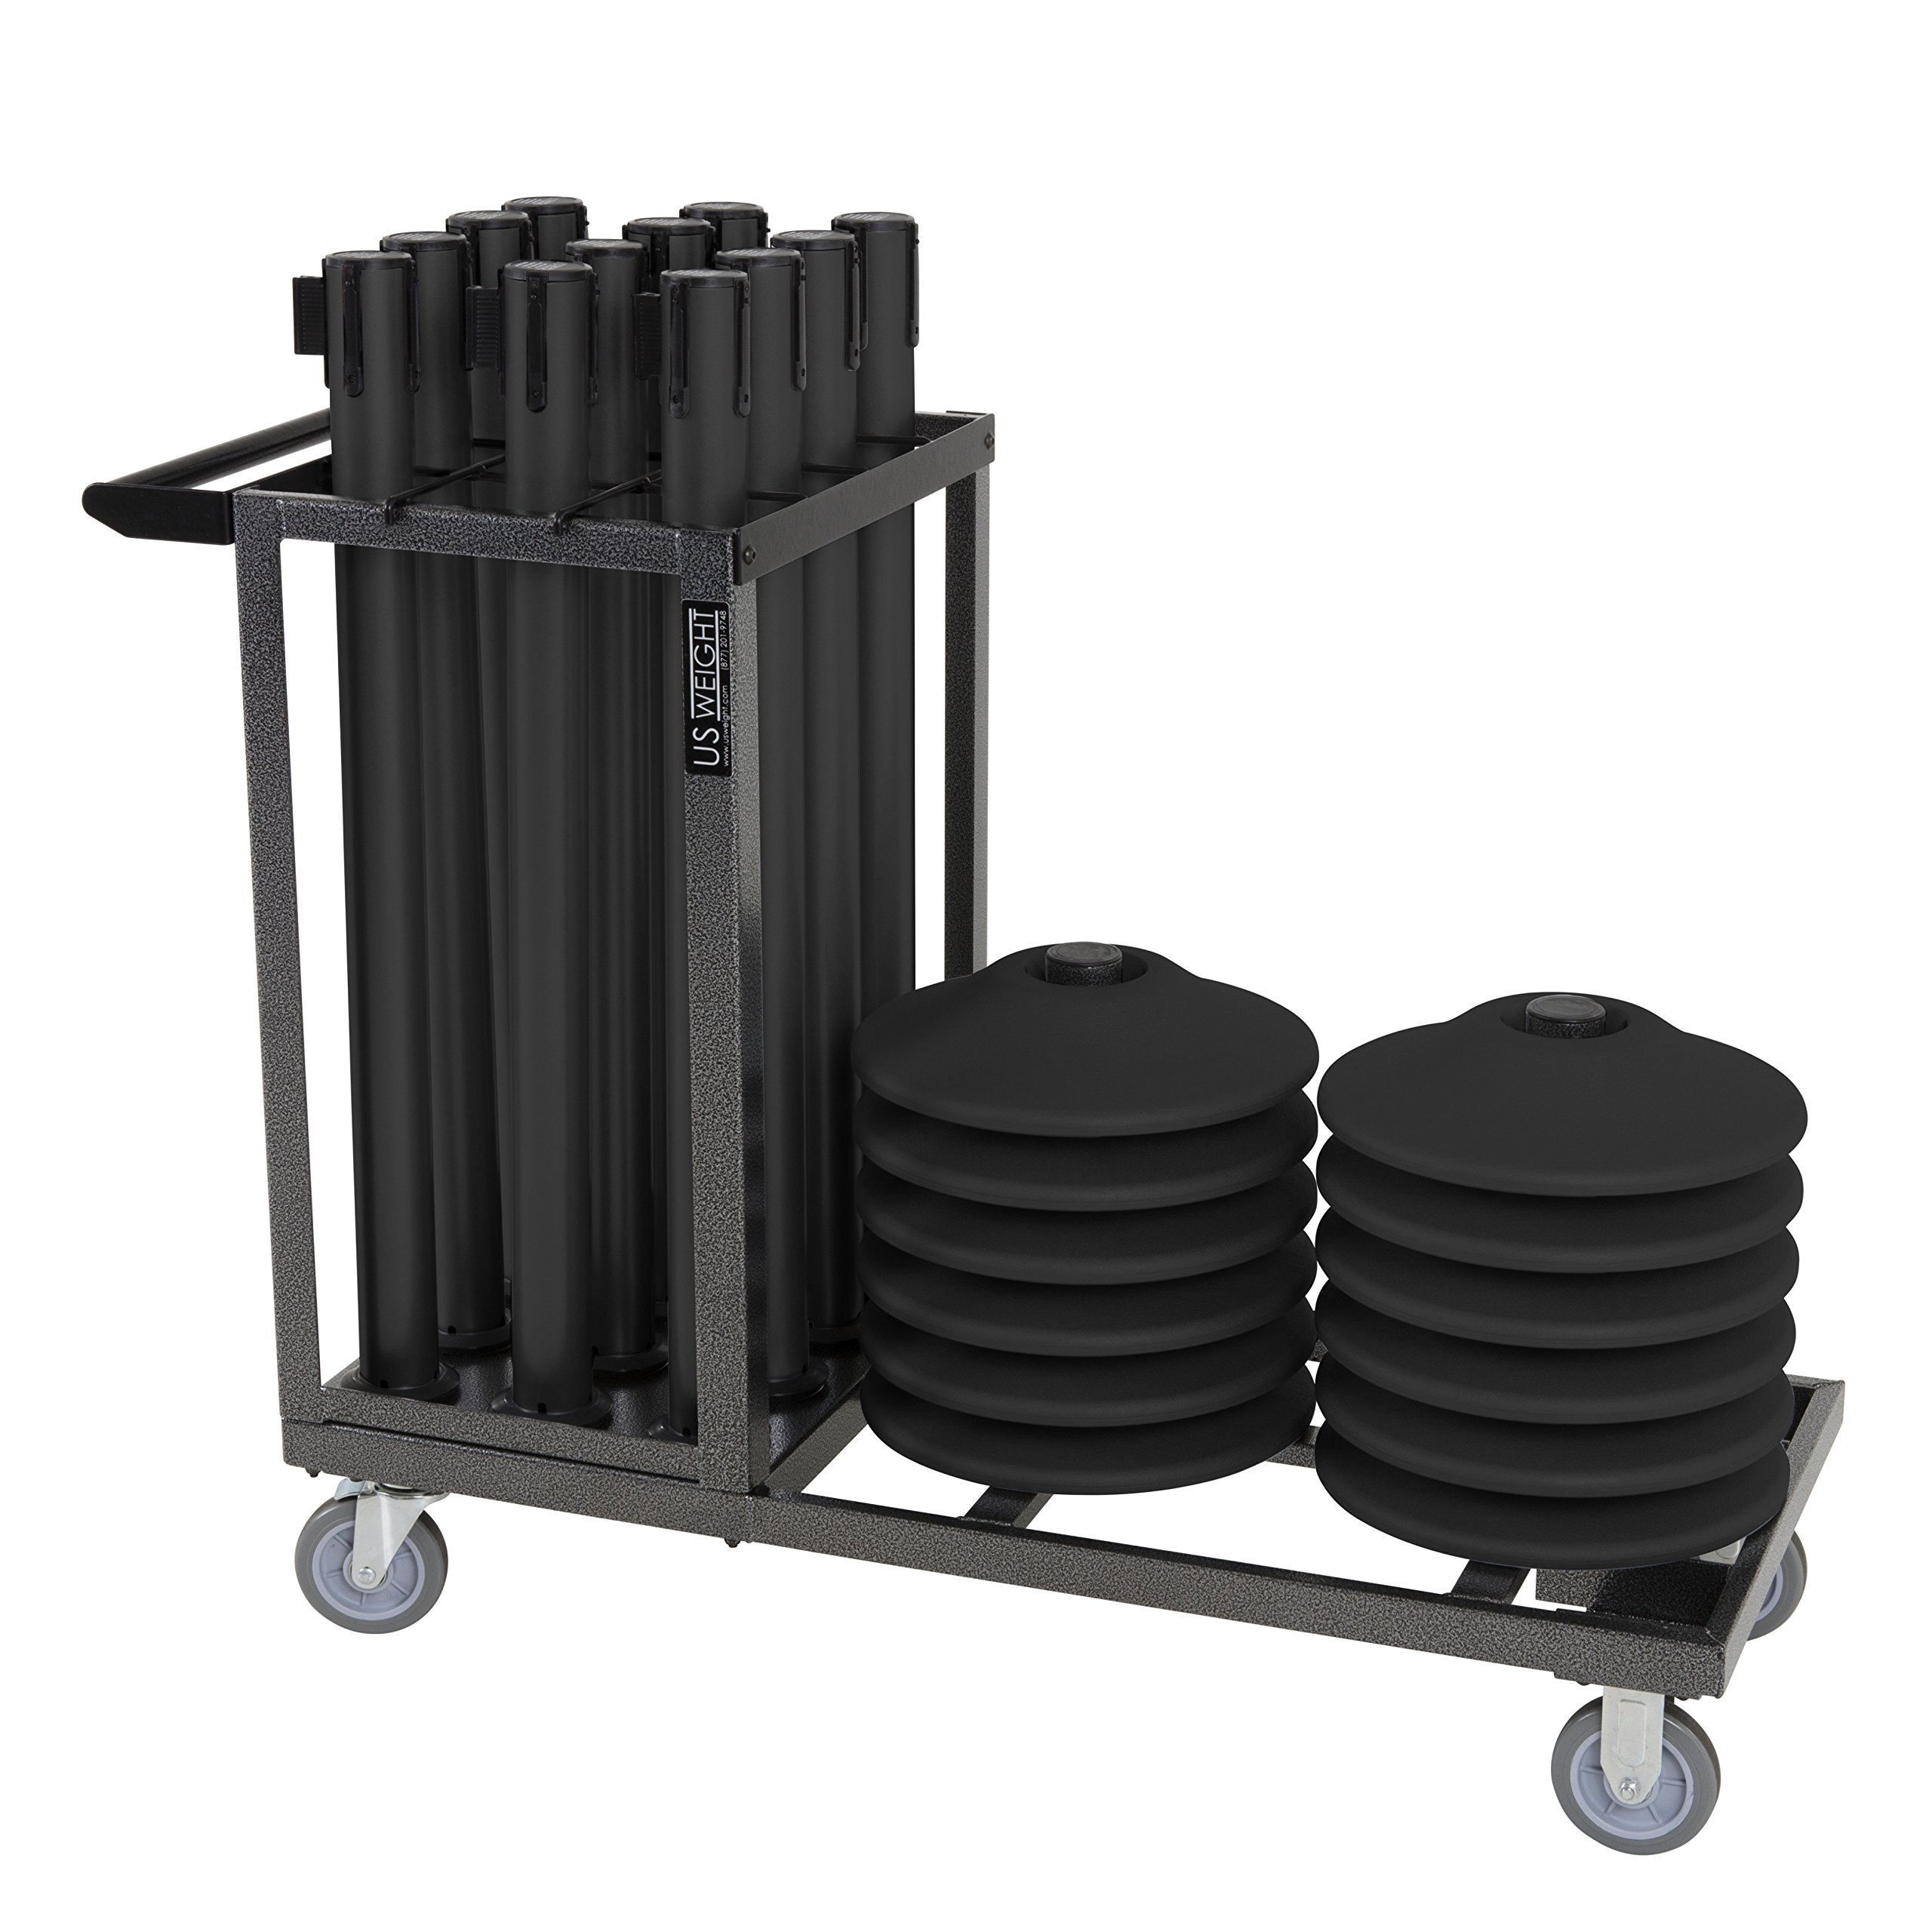 US Weight Statesman Stanchion Cart Kit – 12 Premium Black Steel Stanchions with Cart by US Weight (Image #1)